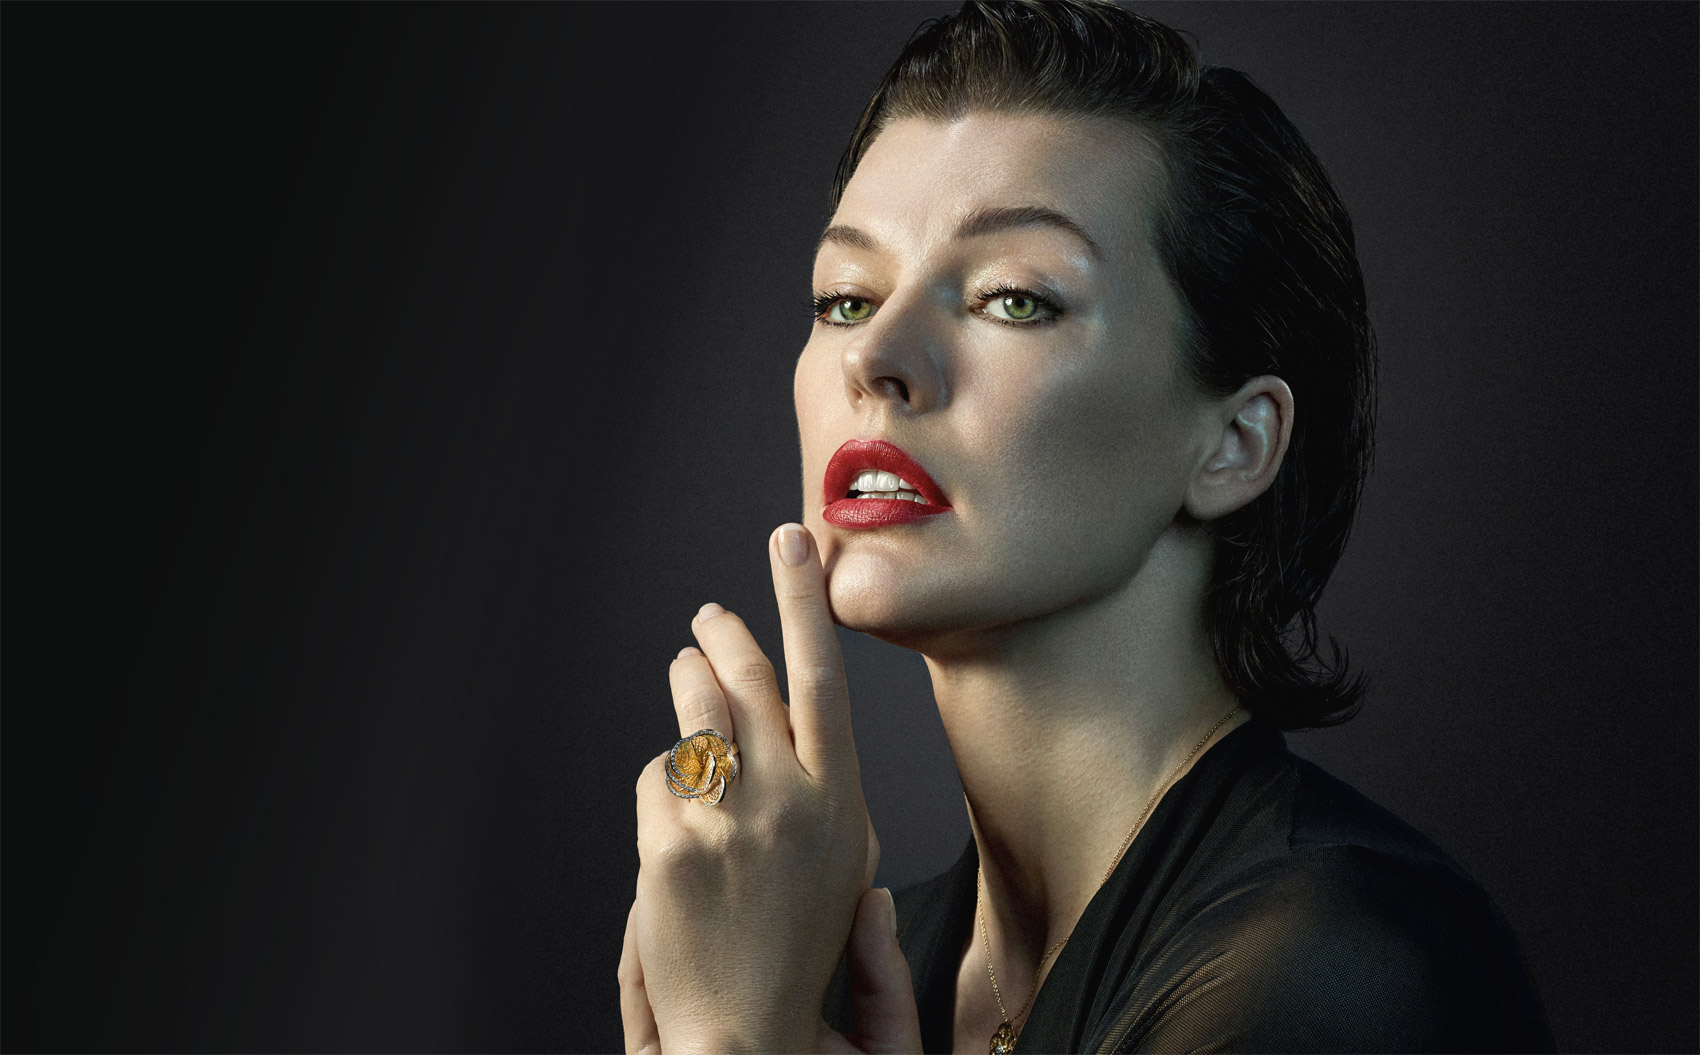 Portuguese Jewellery Launches International Campaign With Milla Jovovich